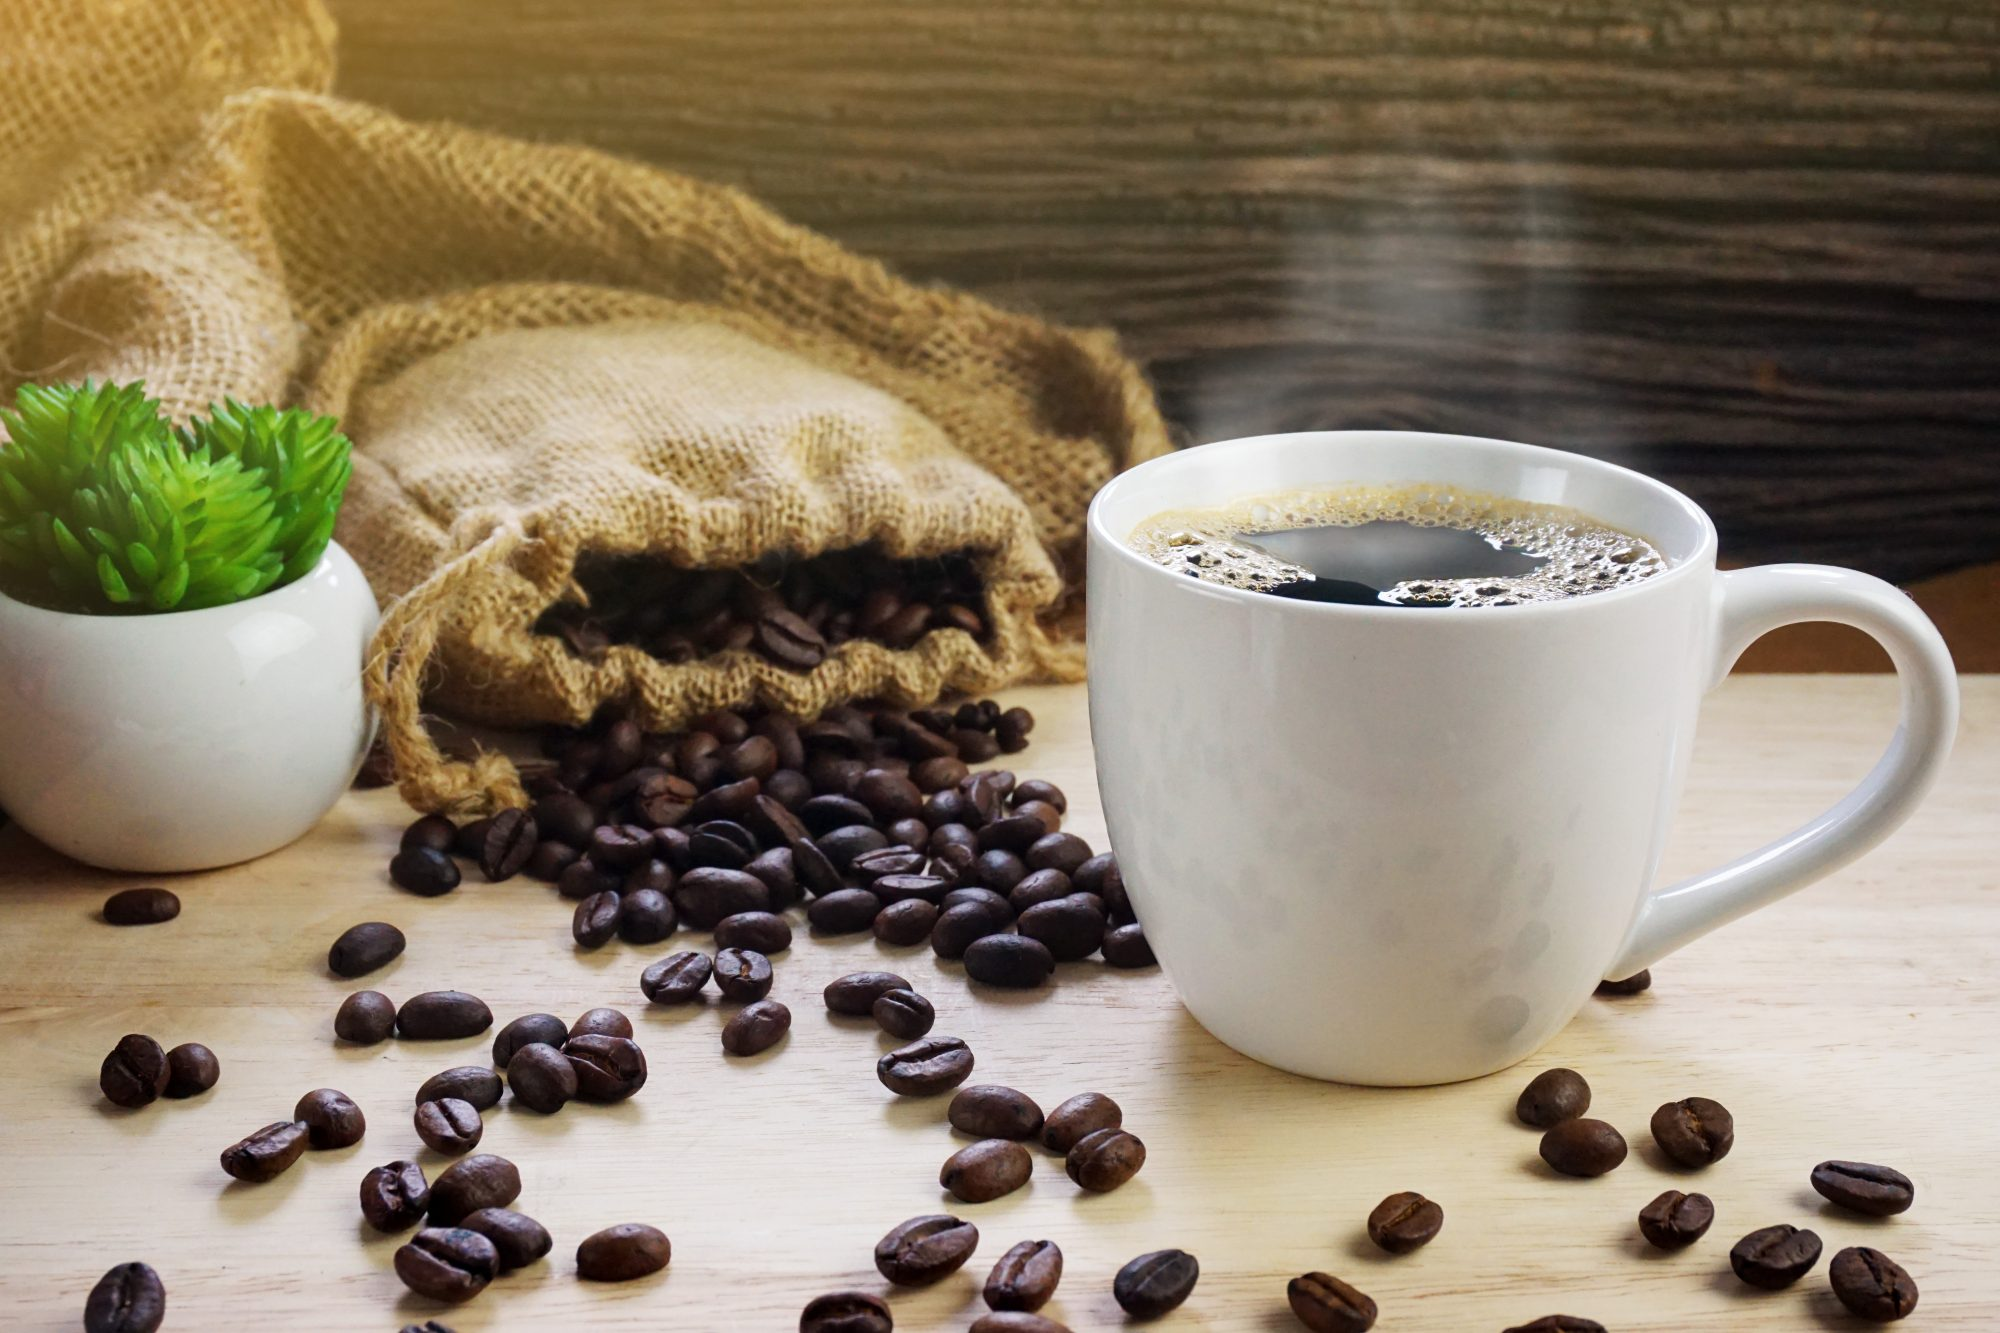 Close-Up Of Drink In Cup With Roasted Coffee Beans On Table